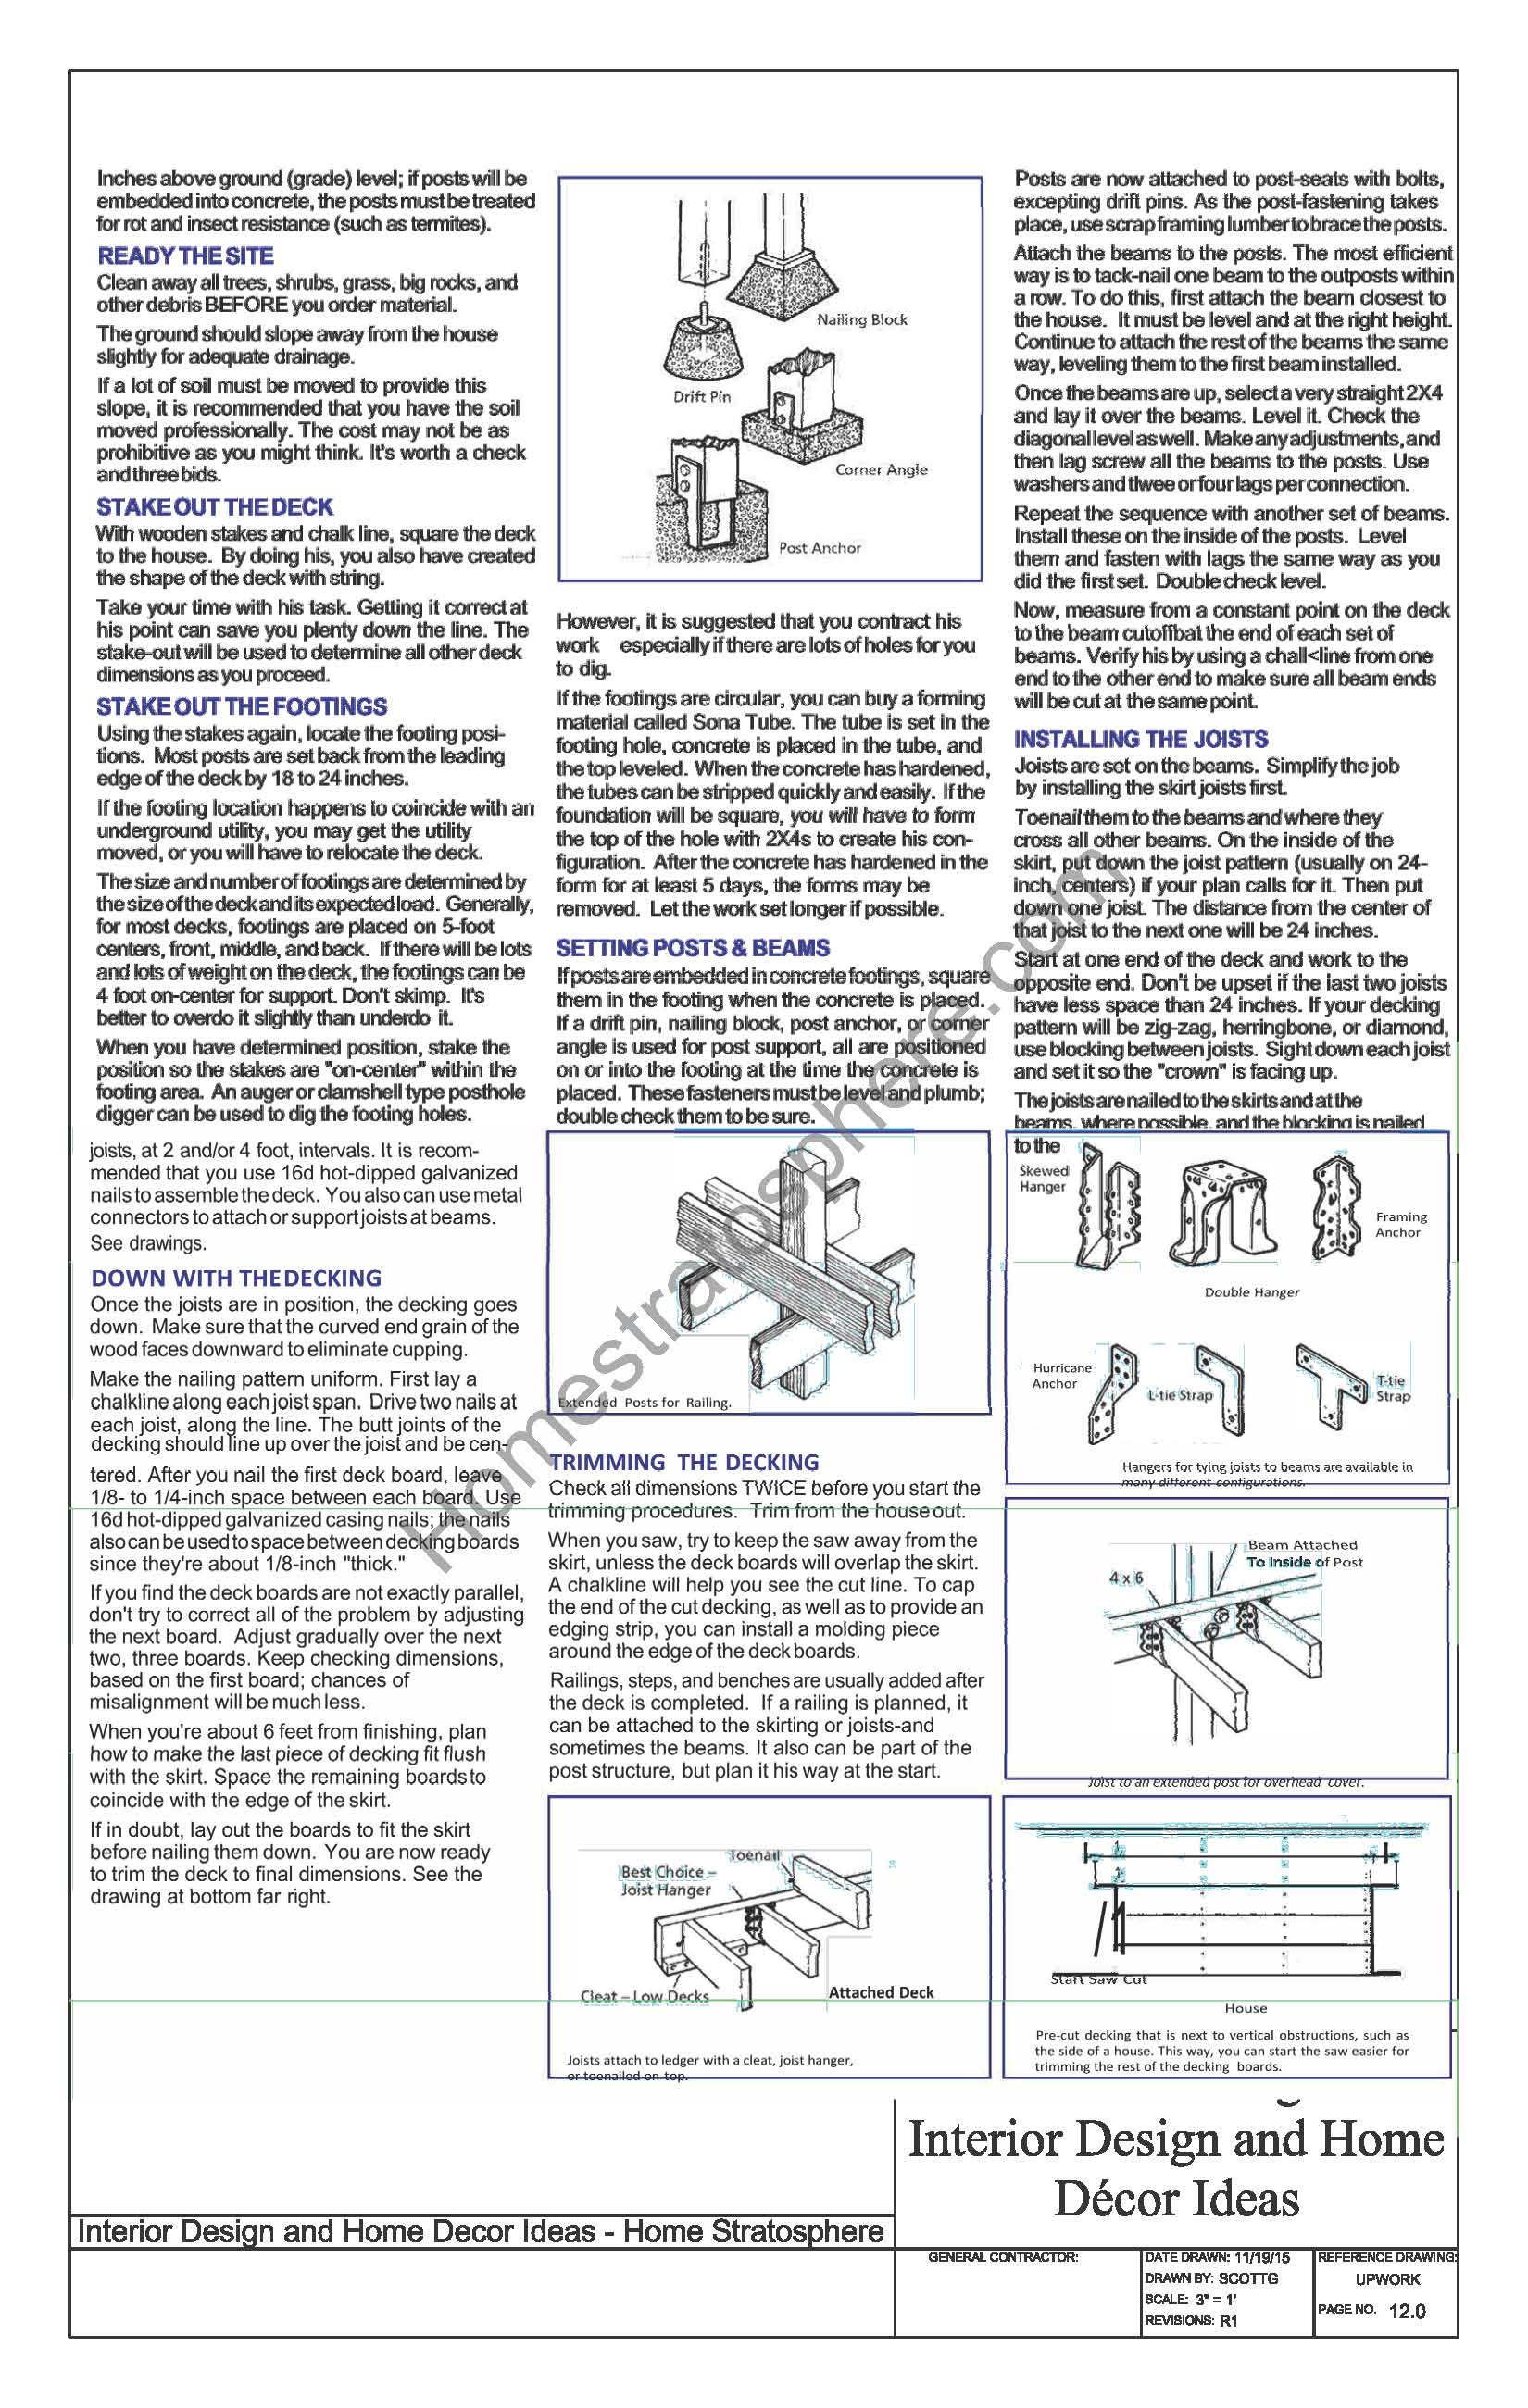 Deck Materials and Tools Checklist page 2